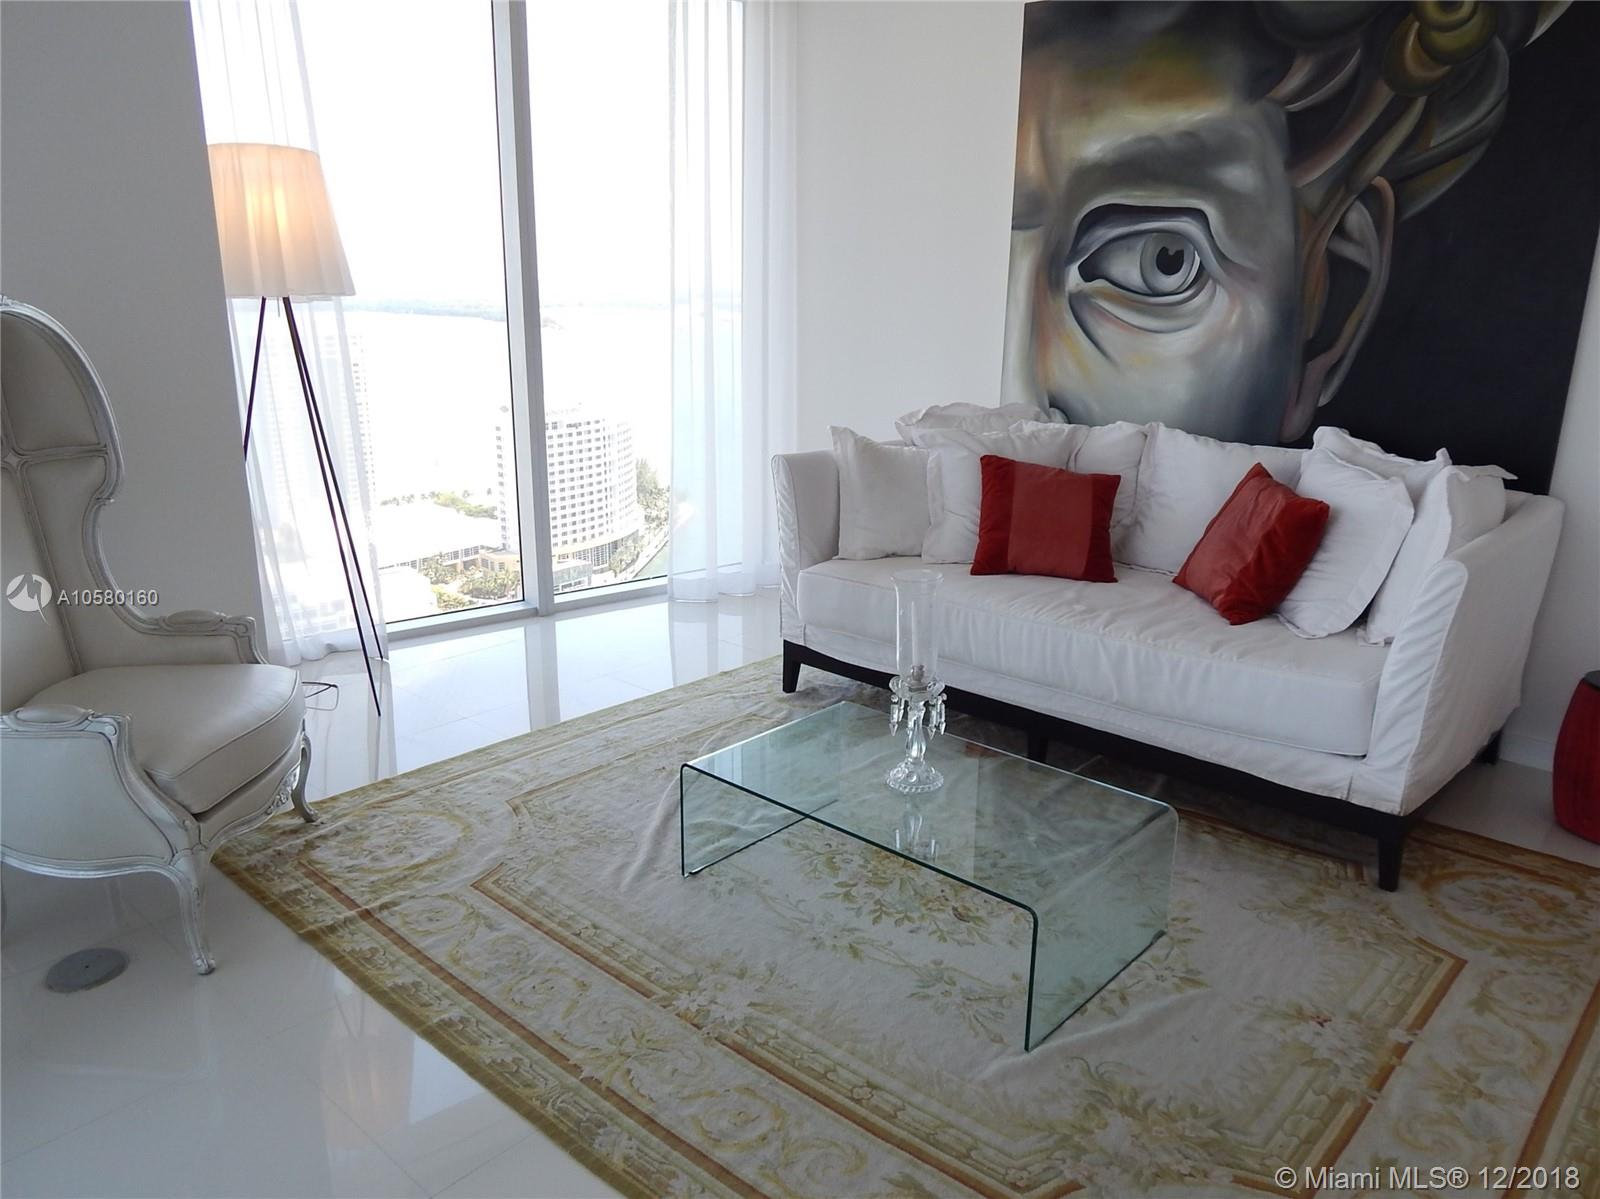 495 Brickell Ave, Miami, FL 33131, Icon Brickell II #3702, Brickell, Miami A10580160 image #6